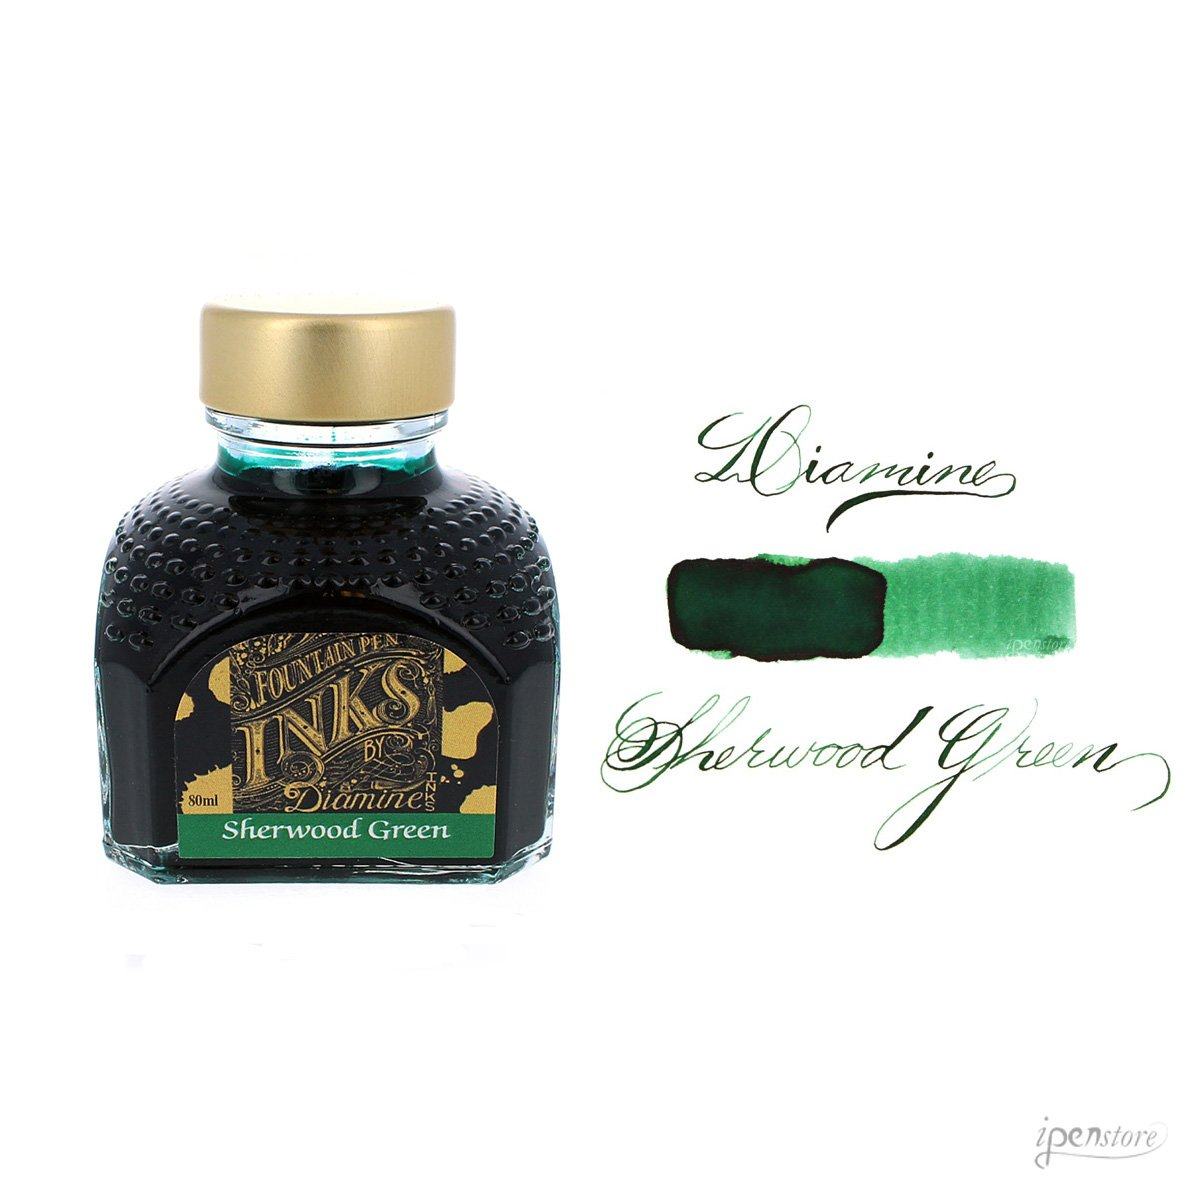 Diamine - Inchiostro per penna stilografica, Sherwood Green 80ml